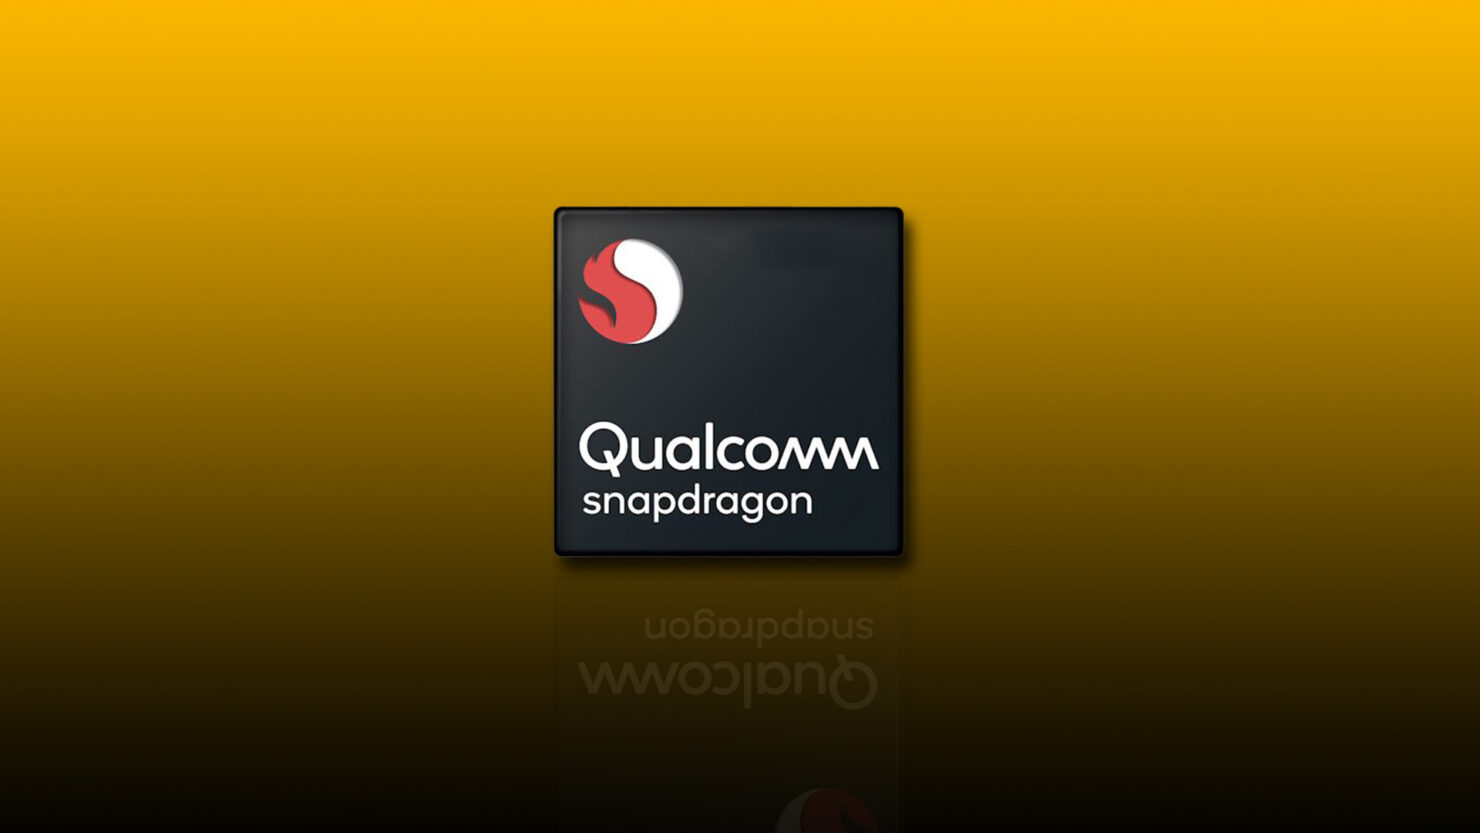 Qualcomm Working on a Snapdragon 888 With No Integrated 5G to Make Way for Less Expensive Android Flagships